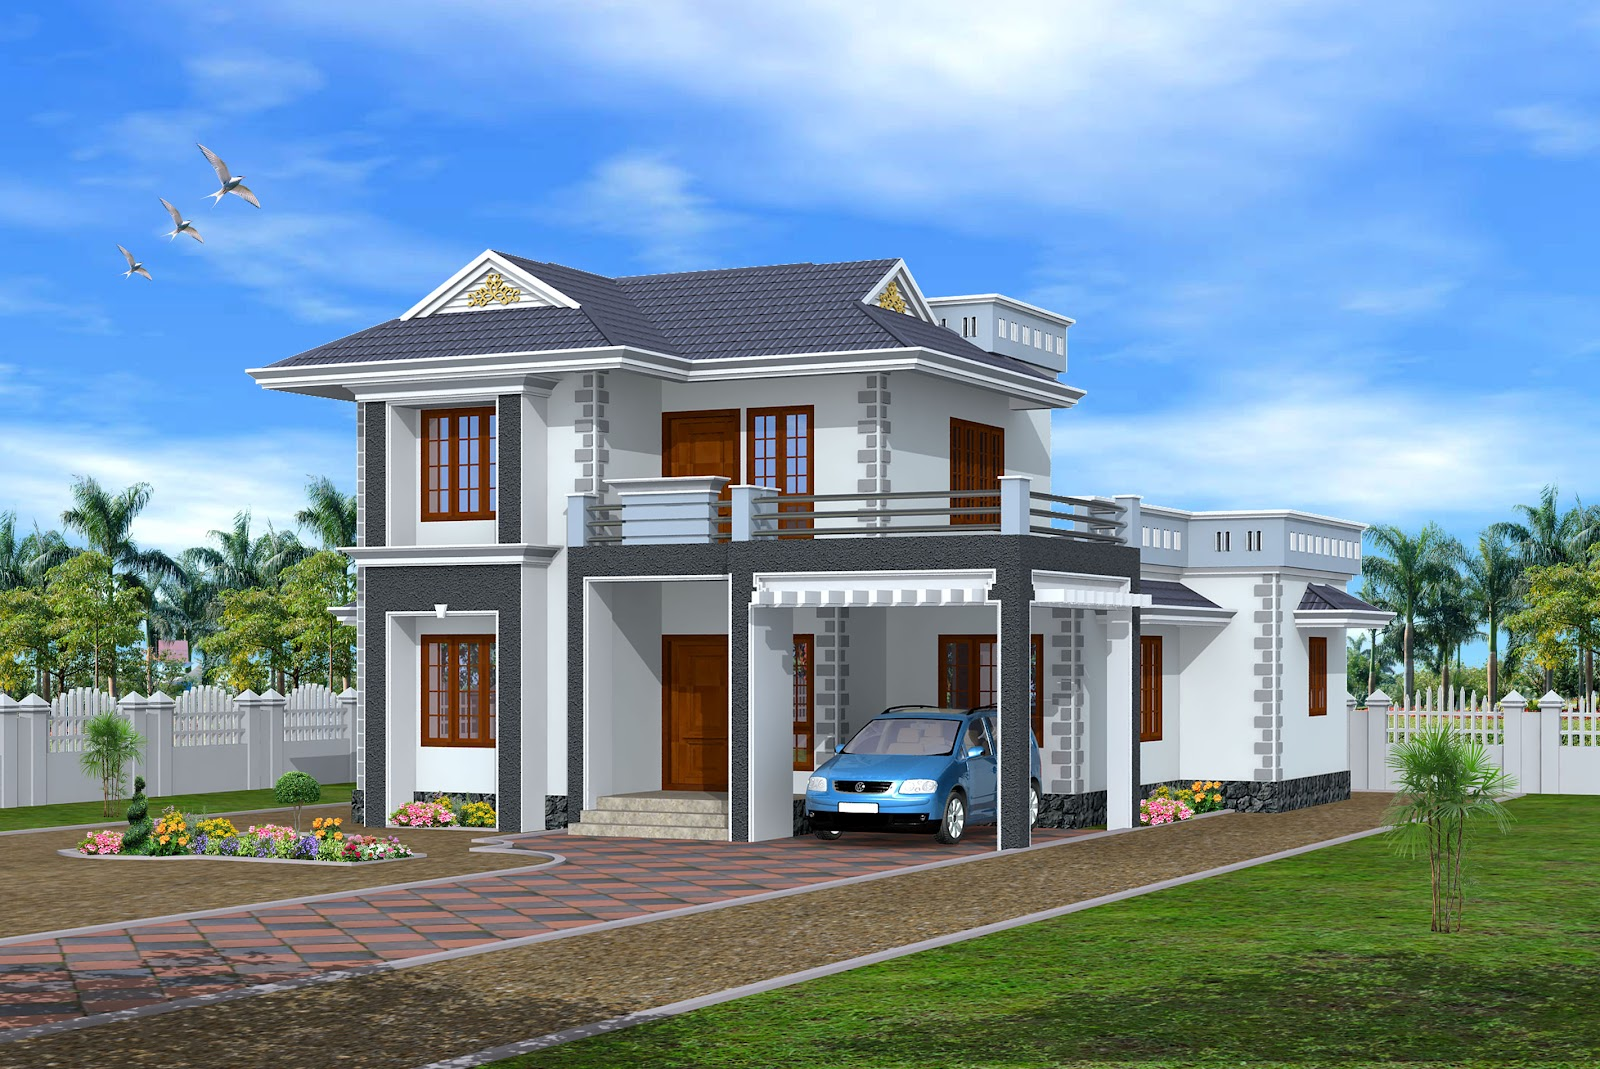 New home designs latest modern homes exterior designs views for New house design